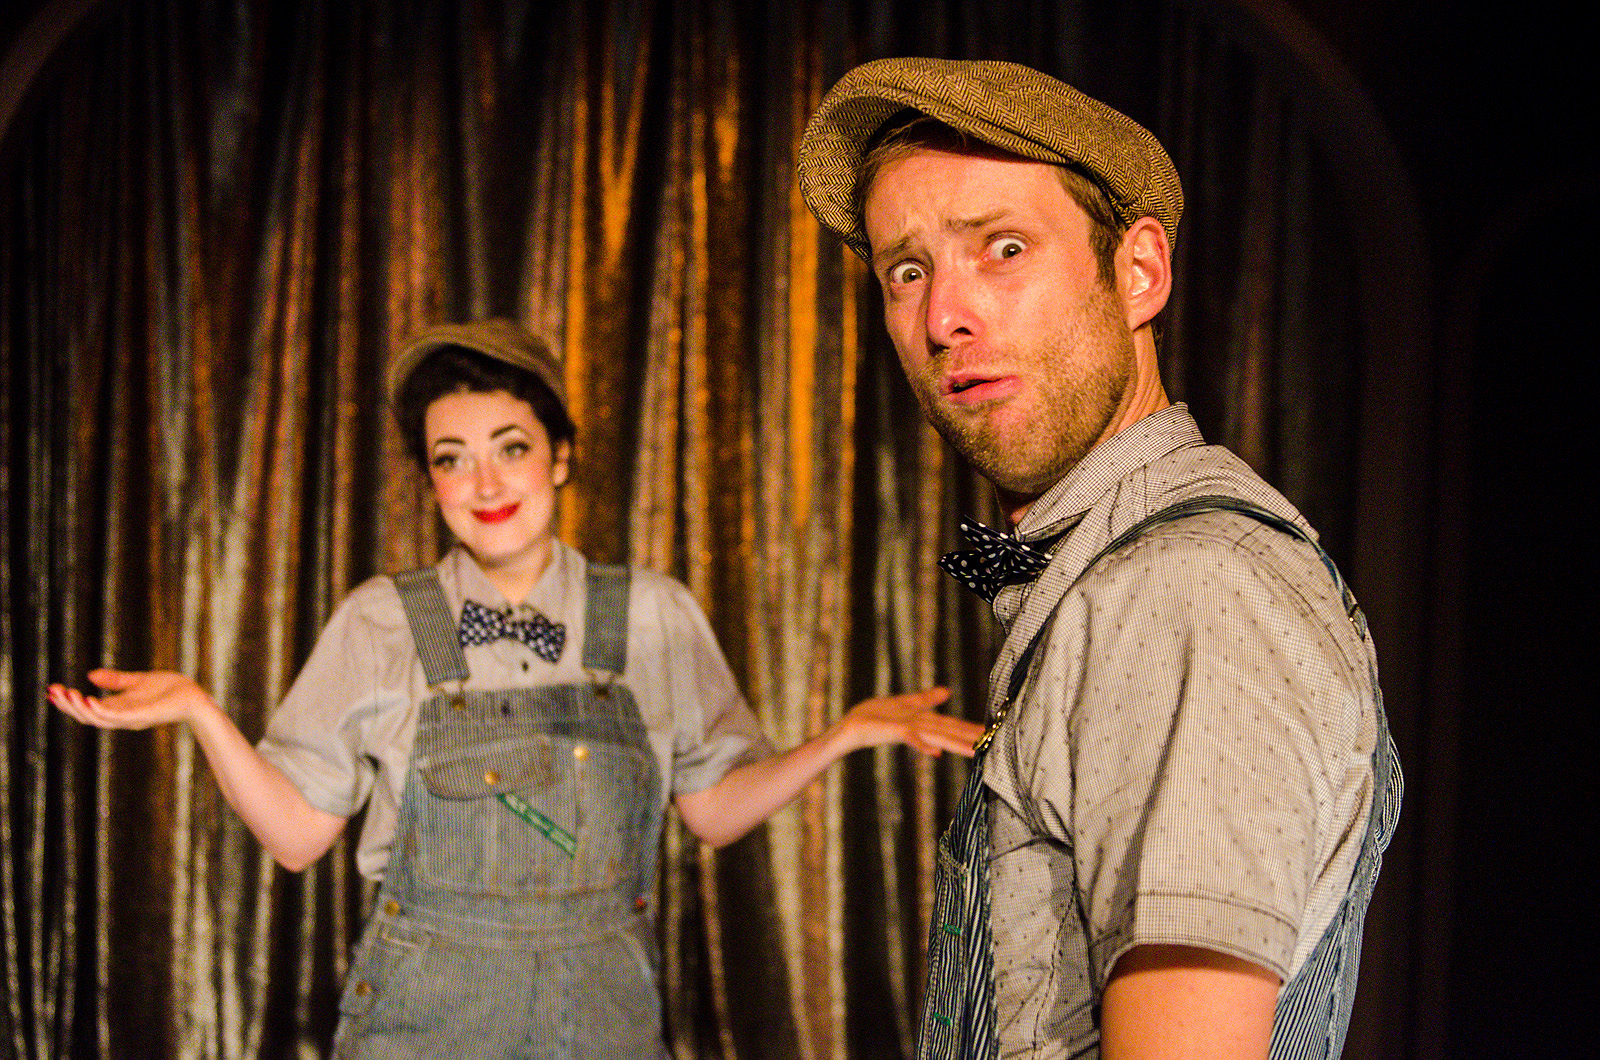 Richard Saudek and Tansy in Eager to Lose at Ars Nova